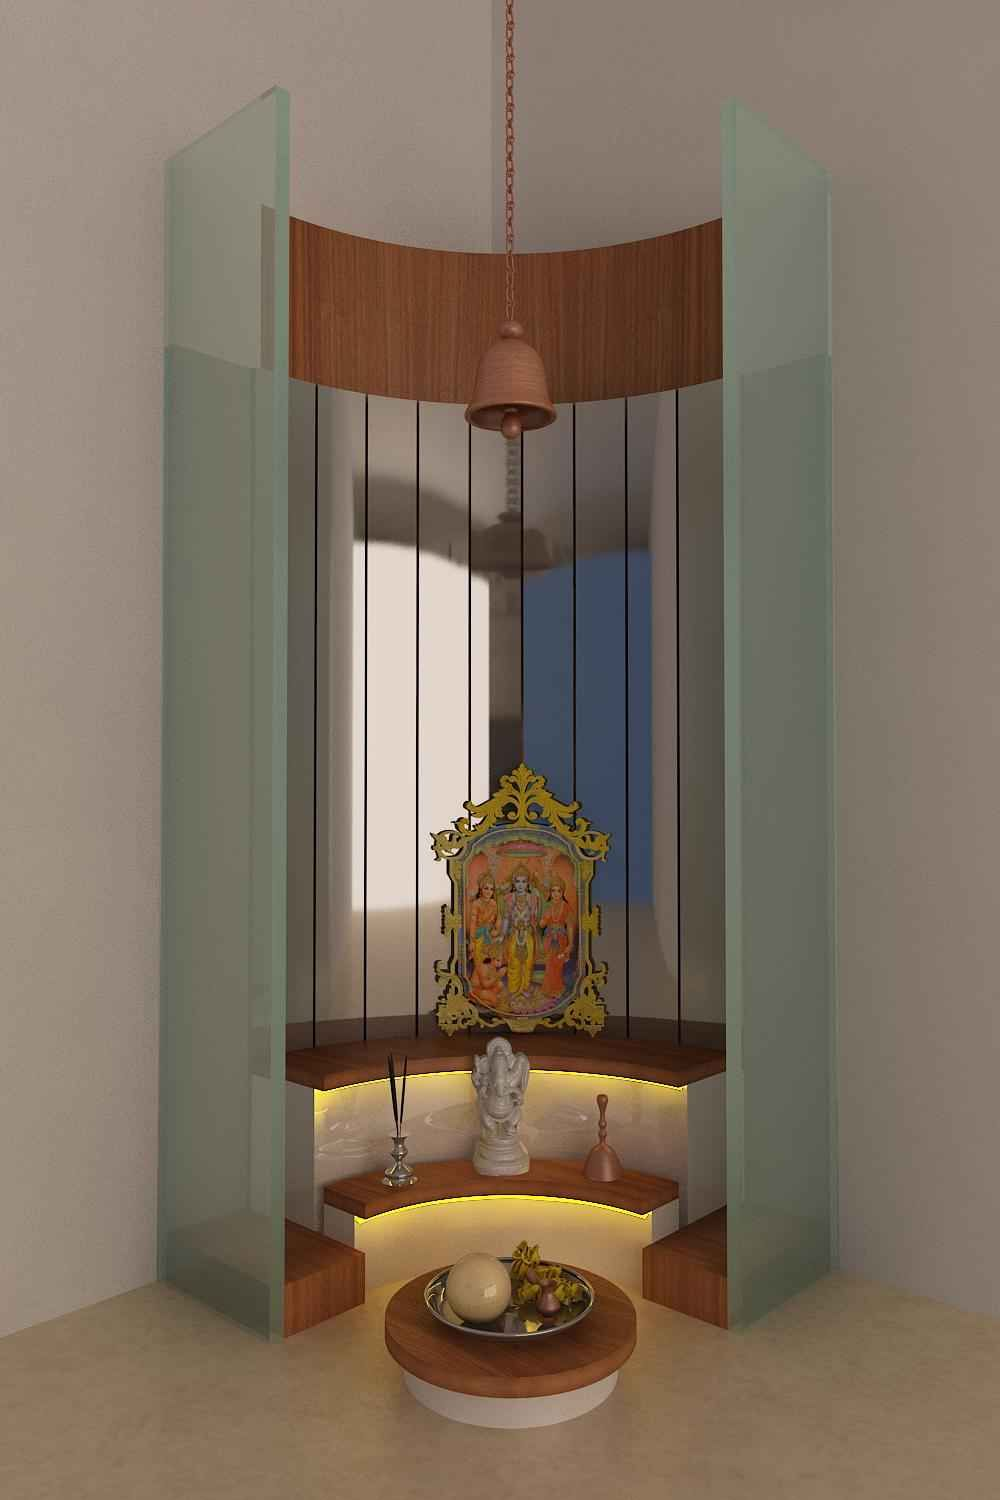 Pooja Room By Kamlesh Maniya, Interior Designer In Surat,Gujarat , India